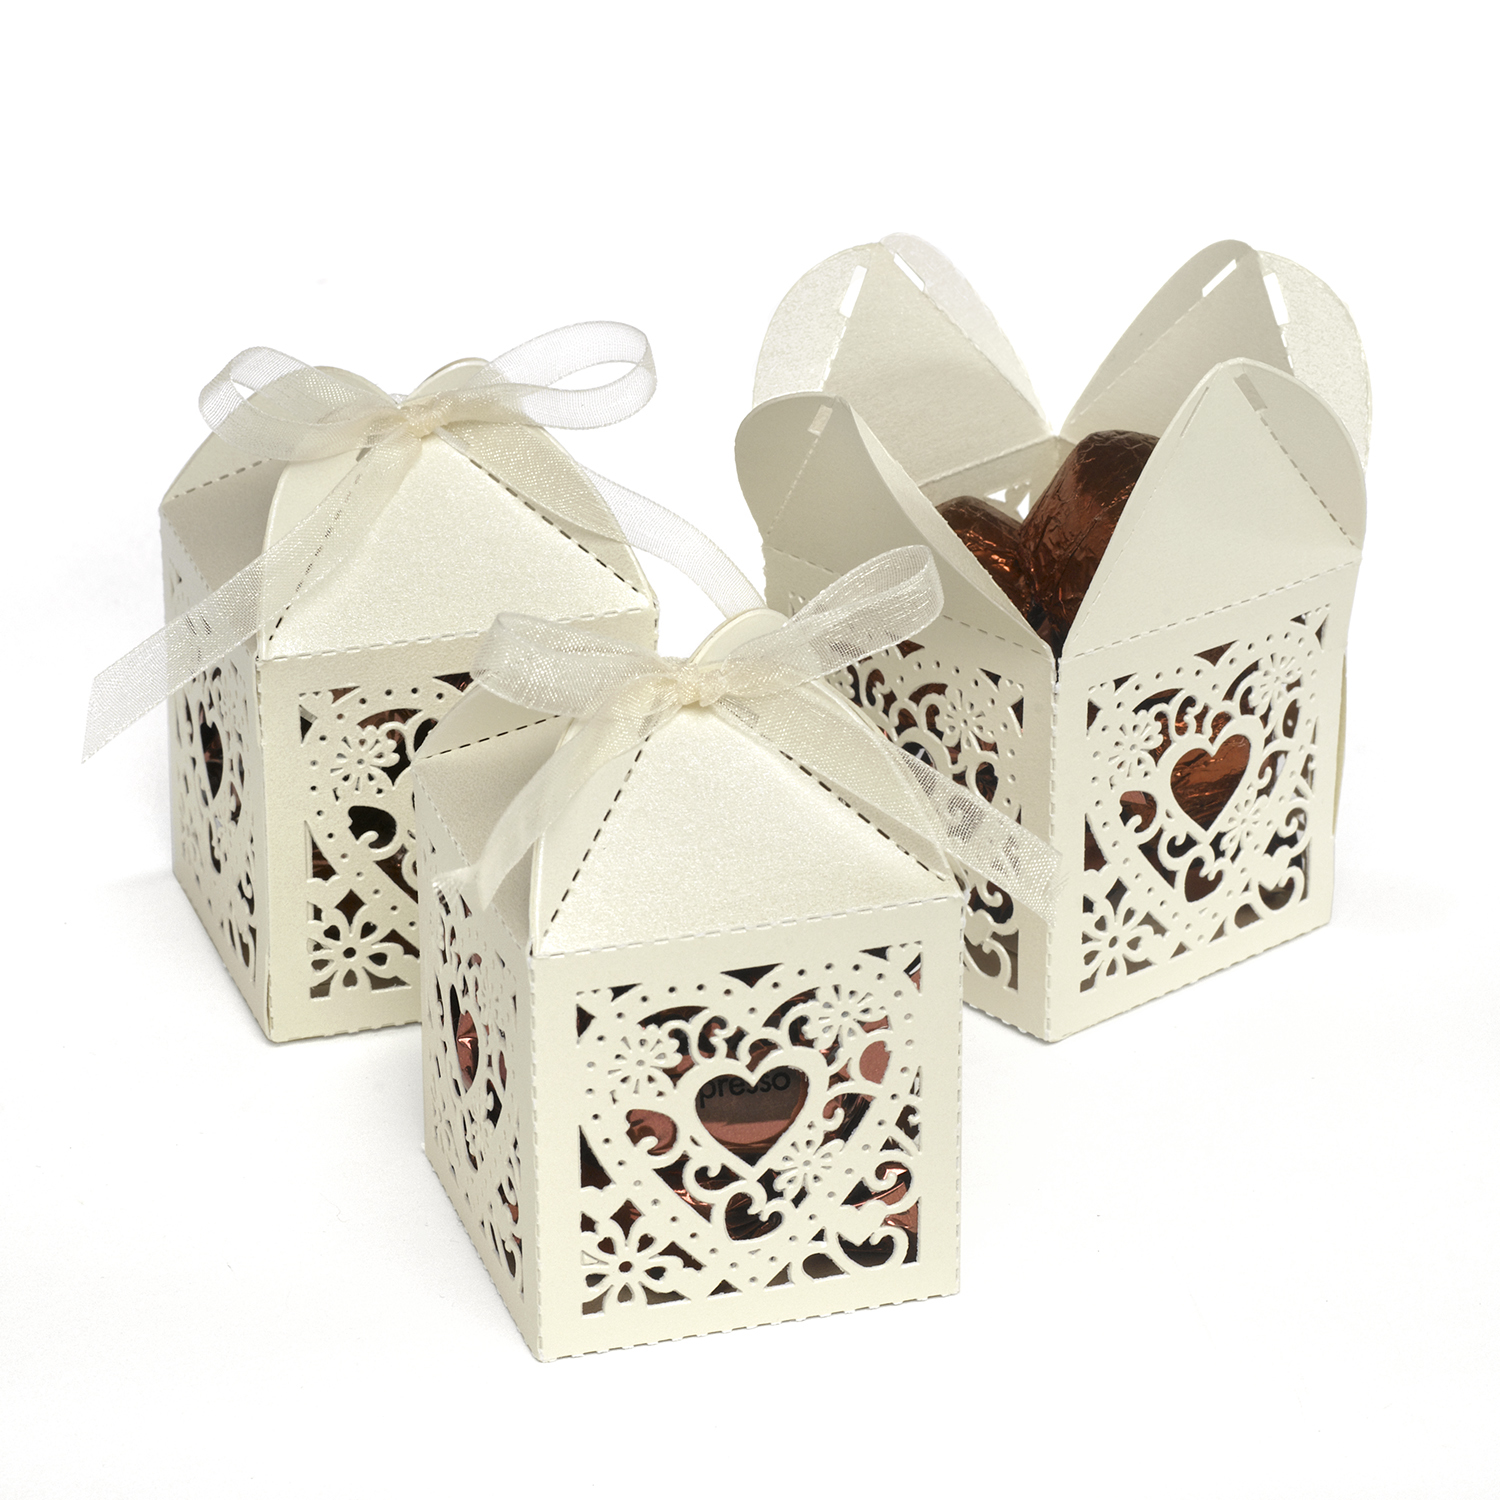 Western Wedding Party Favors - Cattle Kate